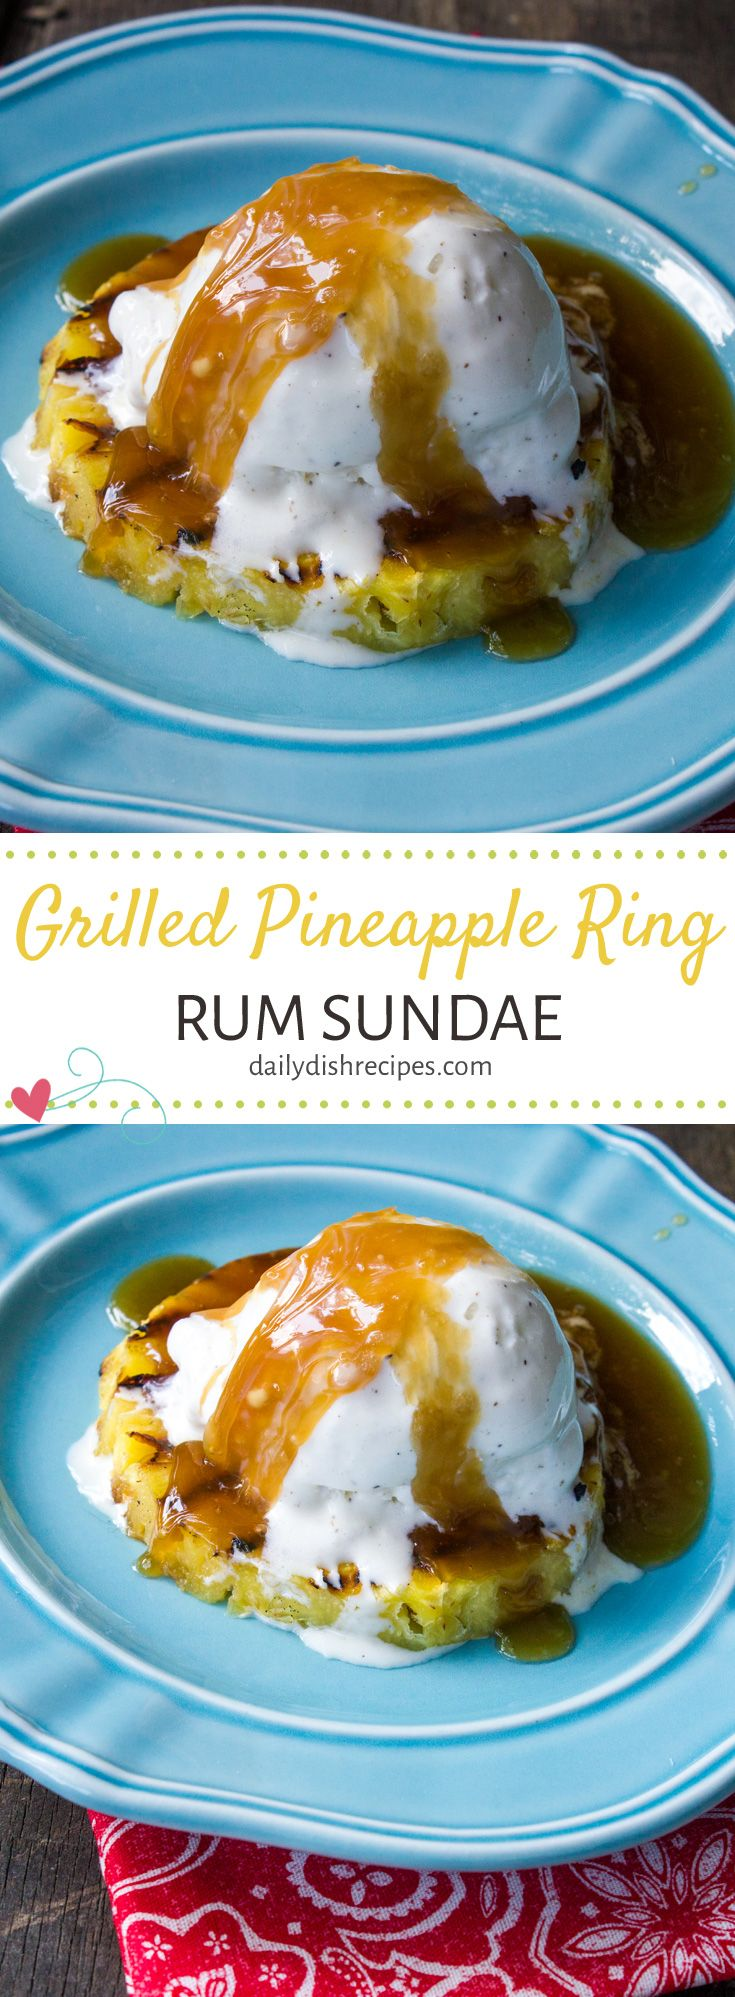 Best 25+ Pineapple grill ideas on Pinterest | Bbq ...